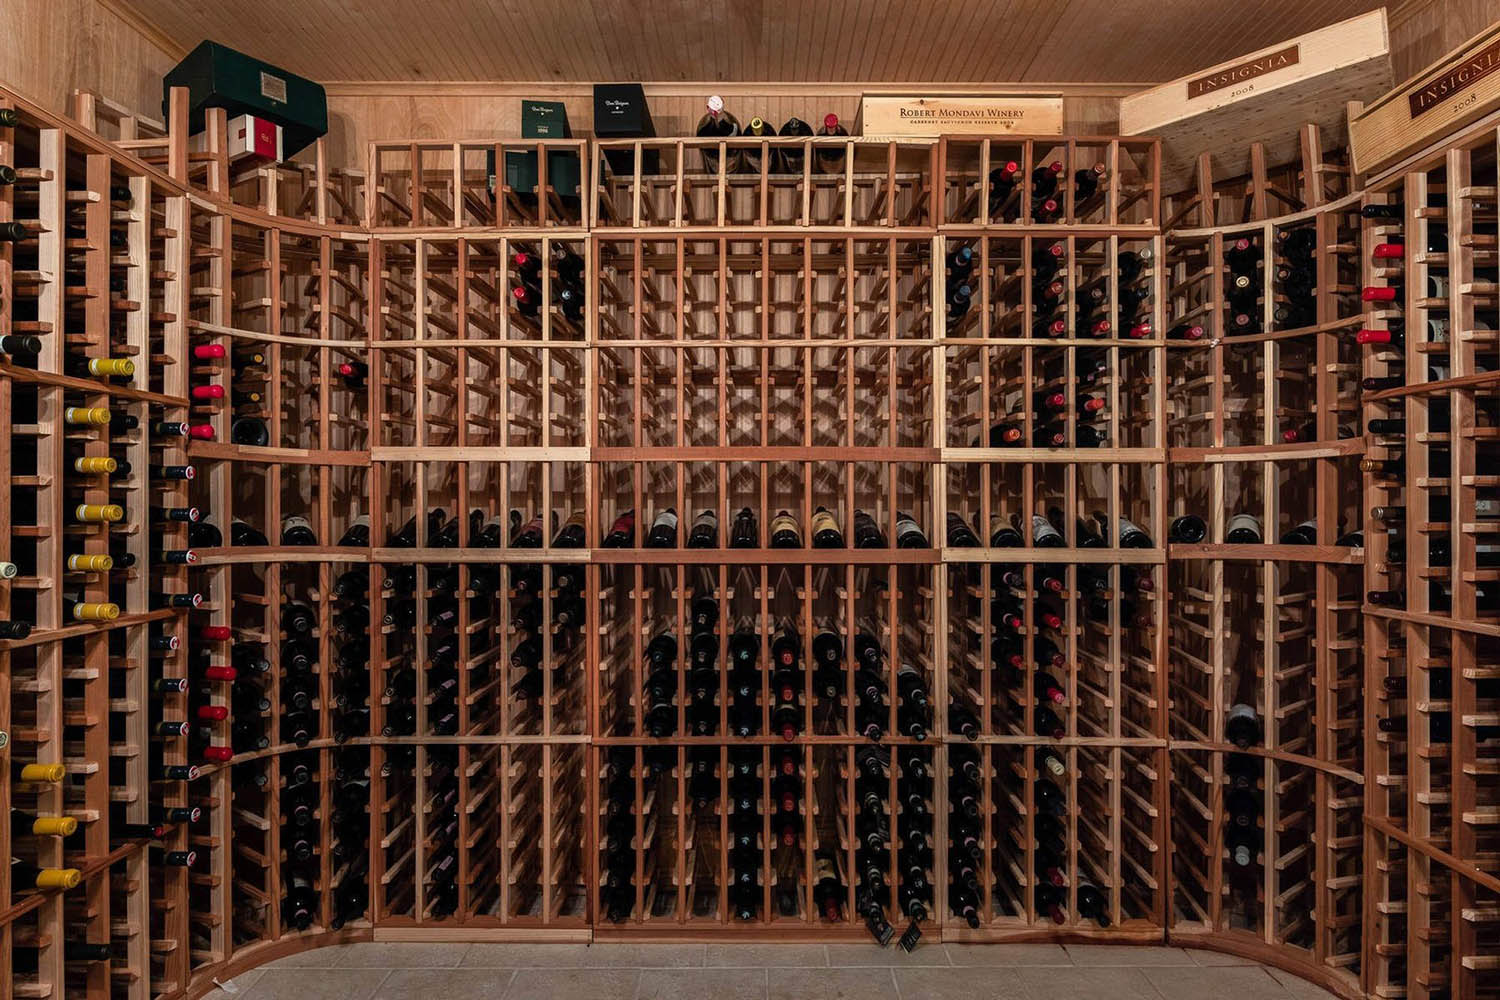 Large DIY wine room with wooden single bottle racks. Wood wall paneling.